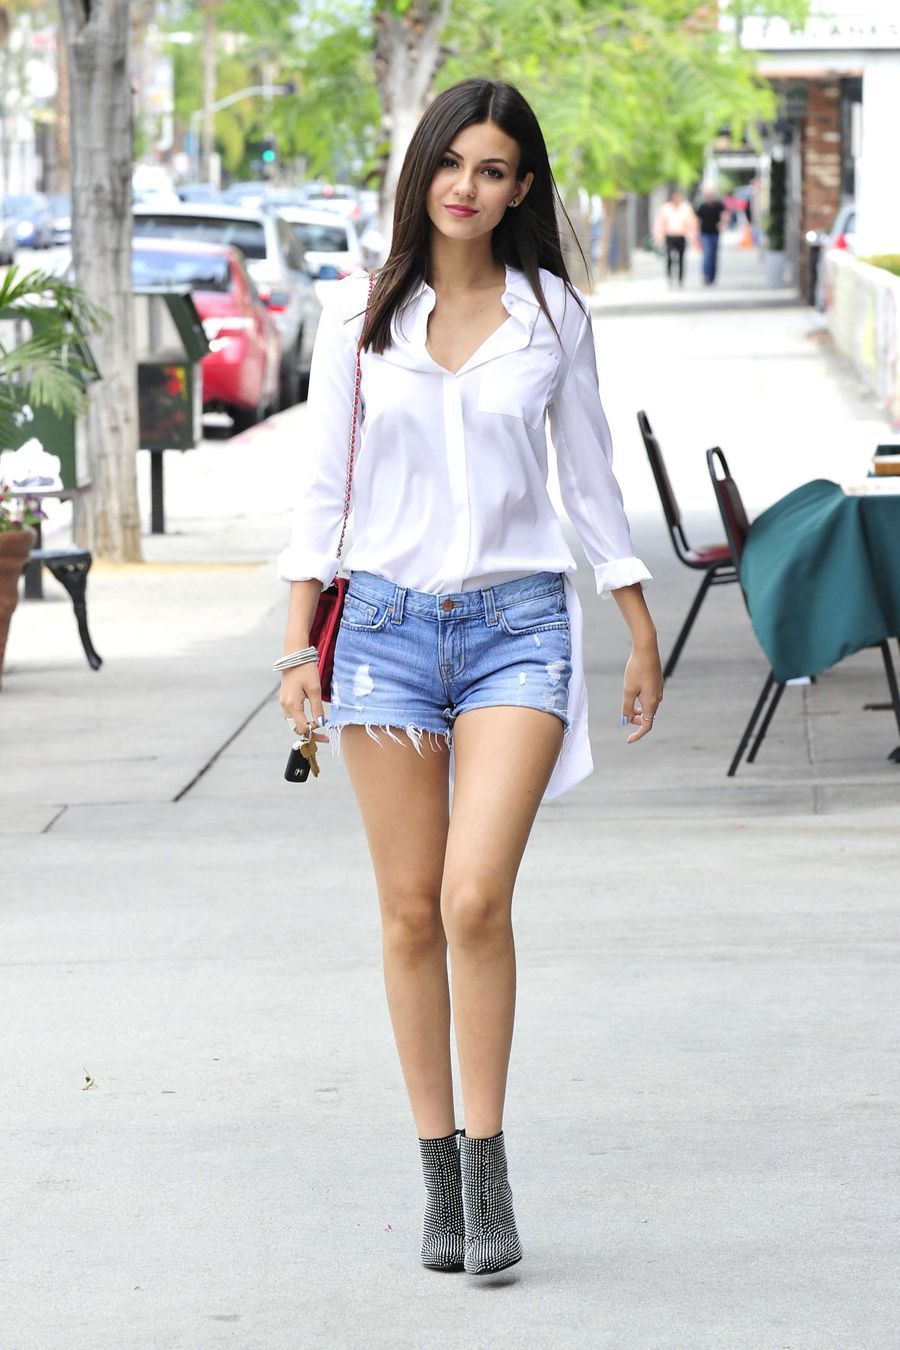 Victoria Justice in Denim Shorts Out in LA